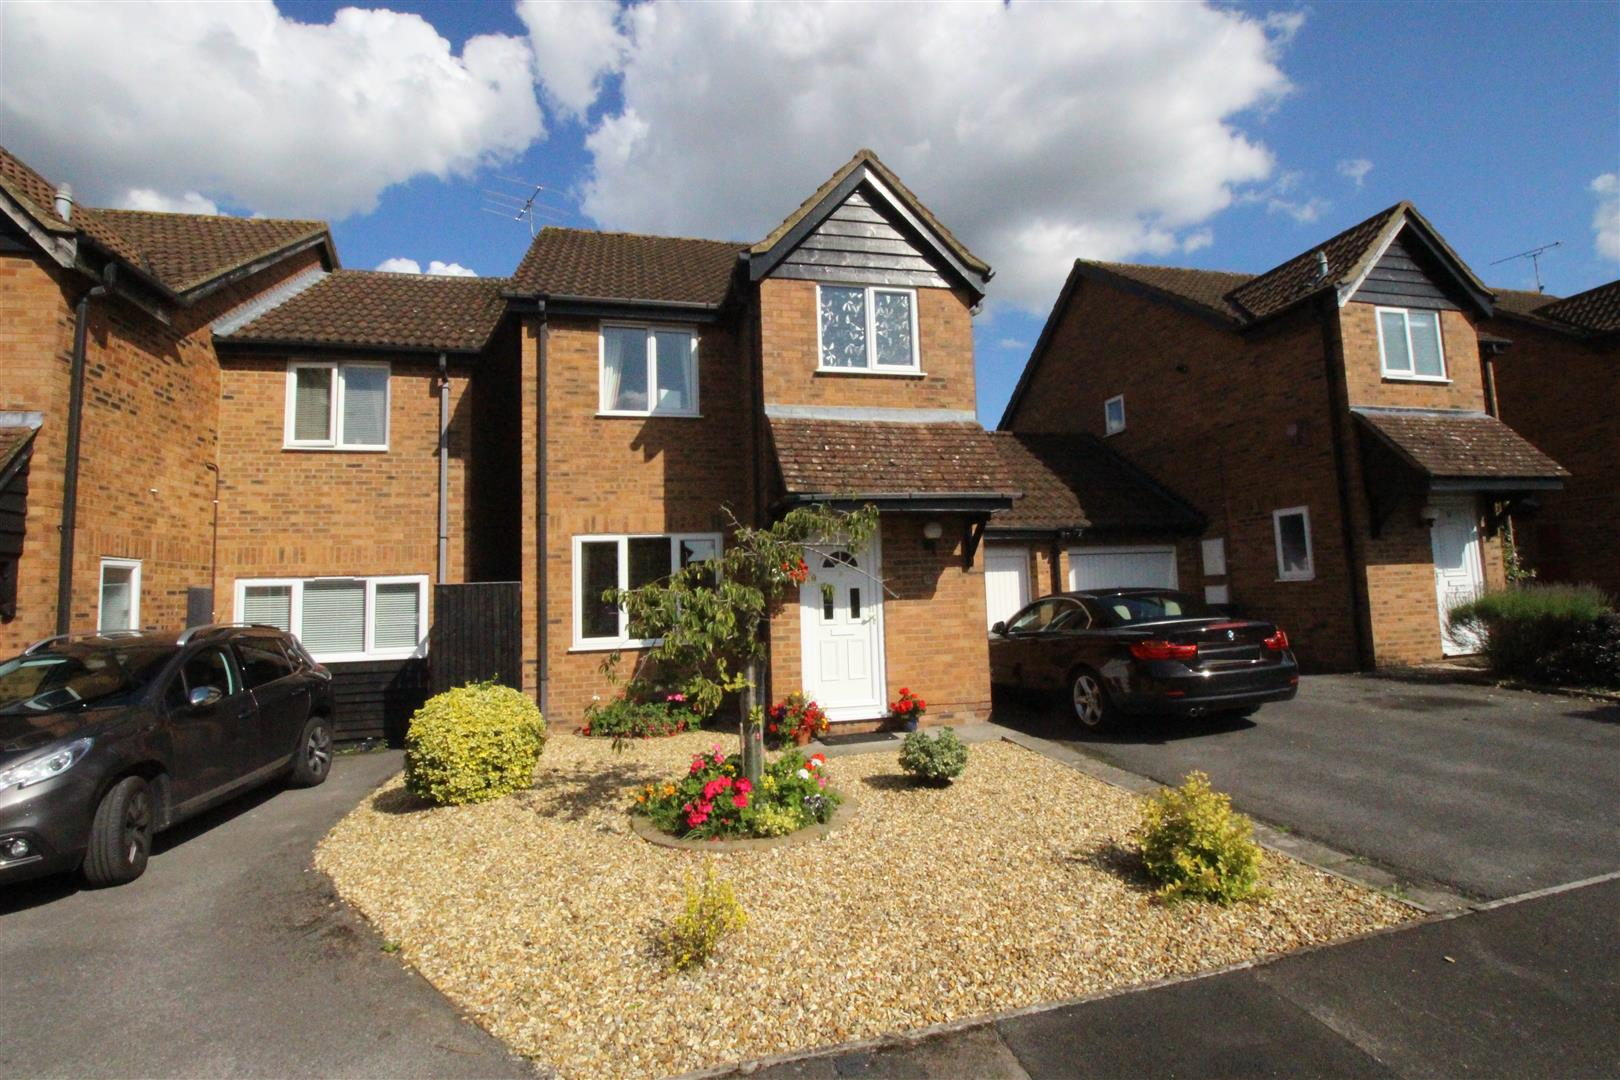 3 Bedrooms Detached House for sale in Ransome Close, Shaw, Swindon